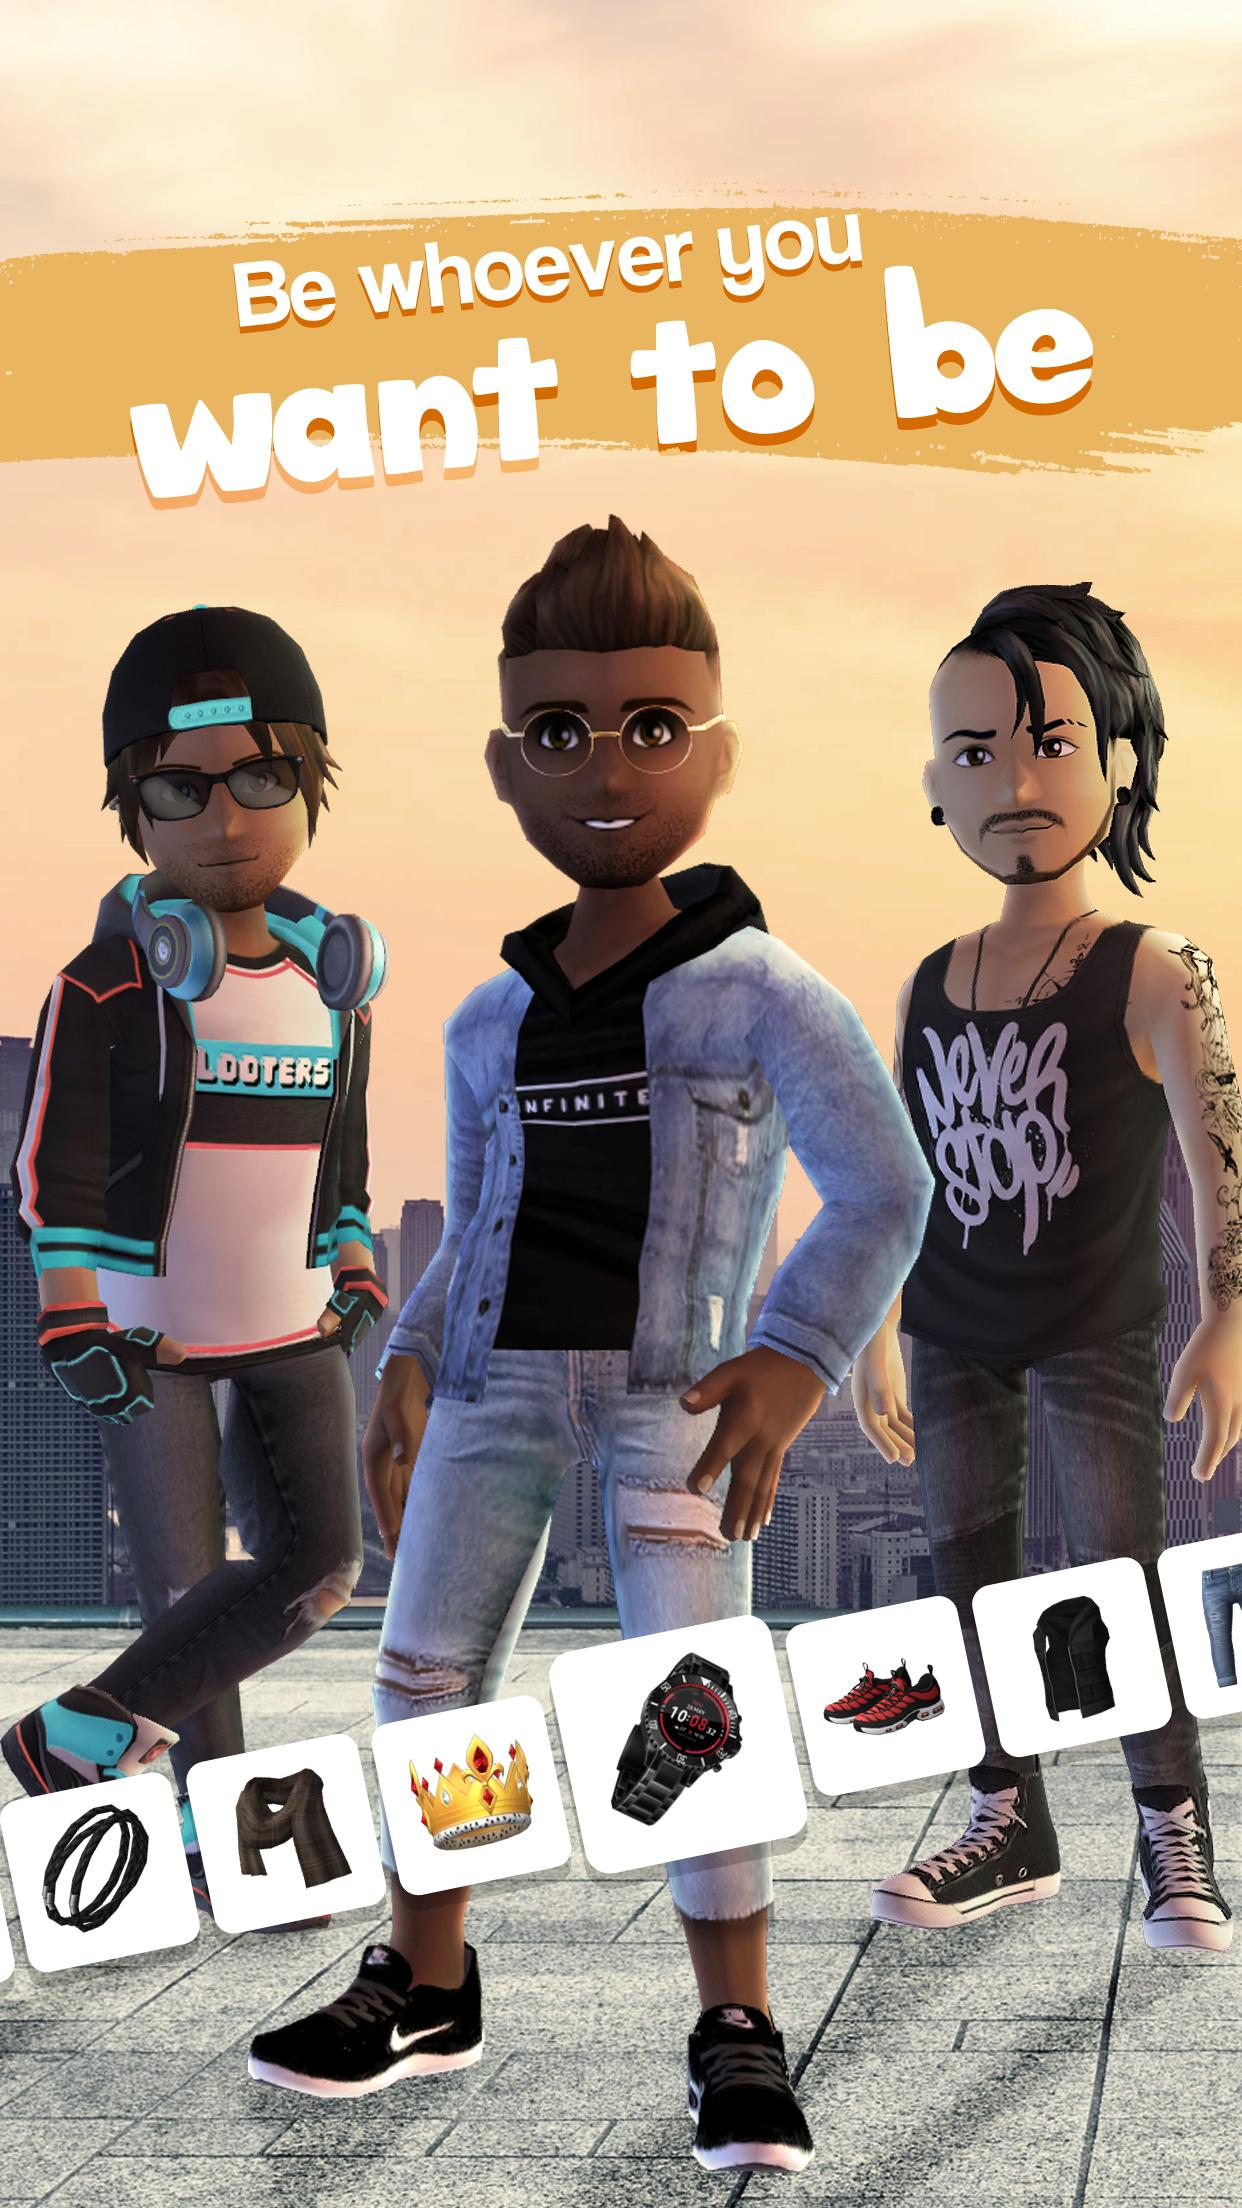 Mobile club download cooee Download Club